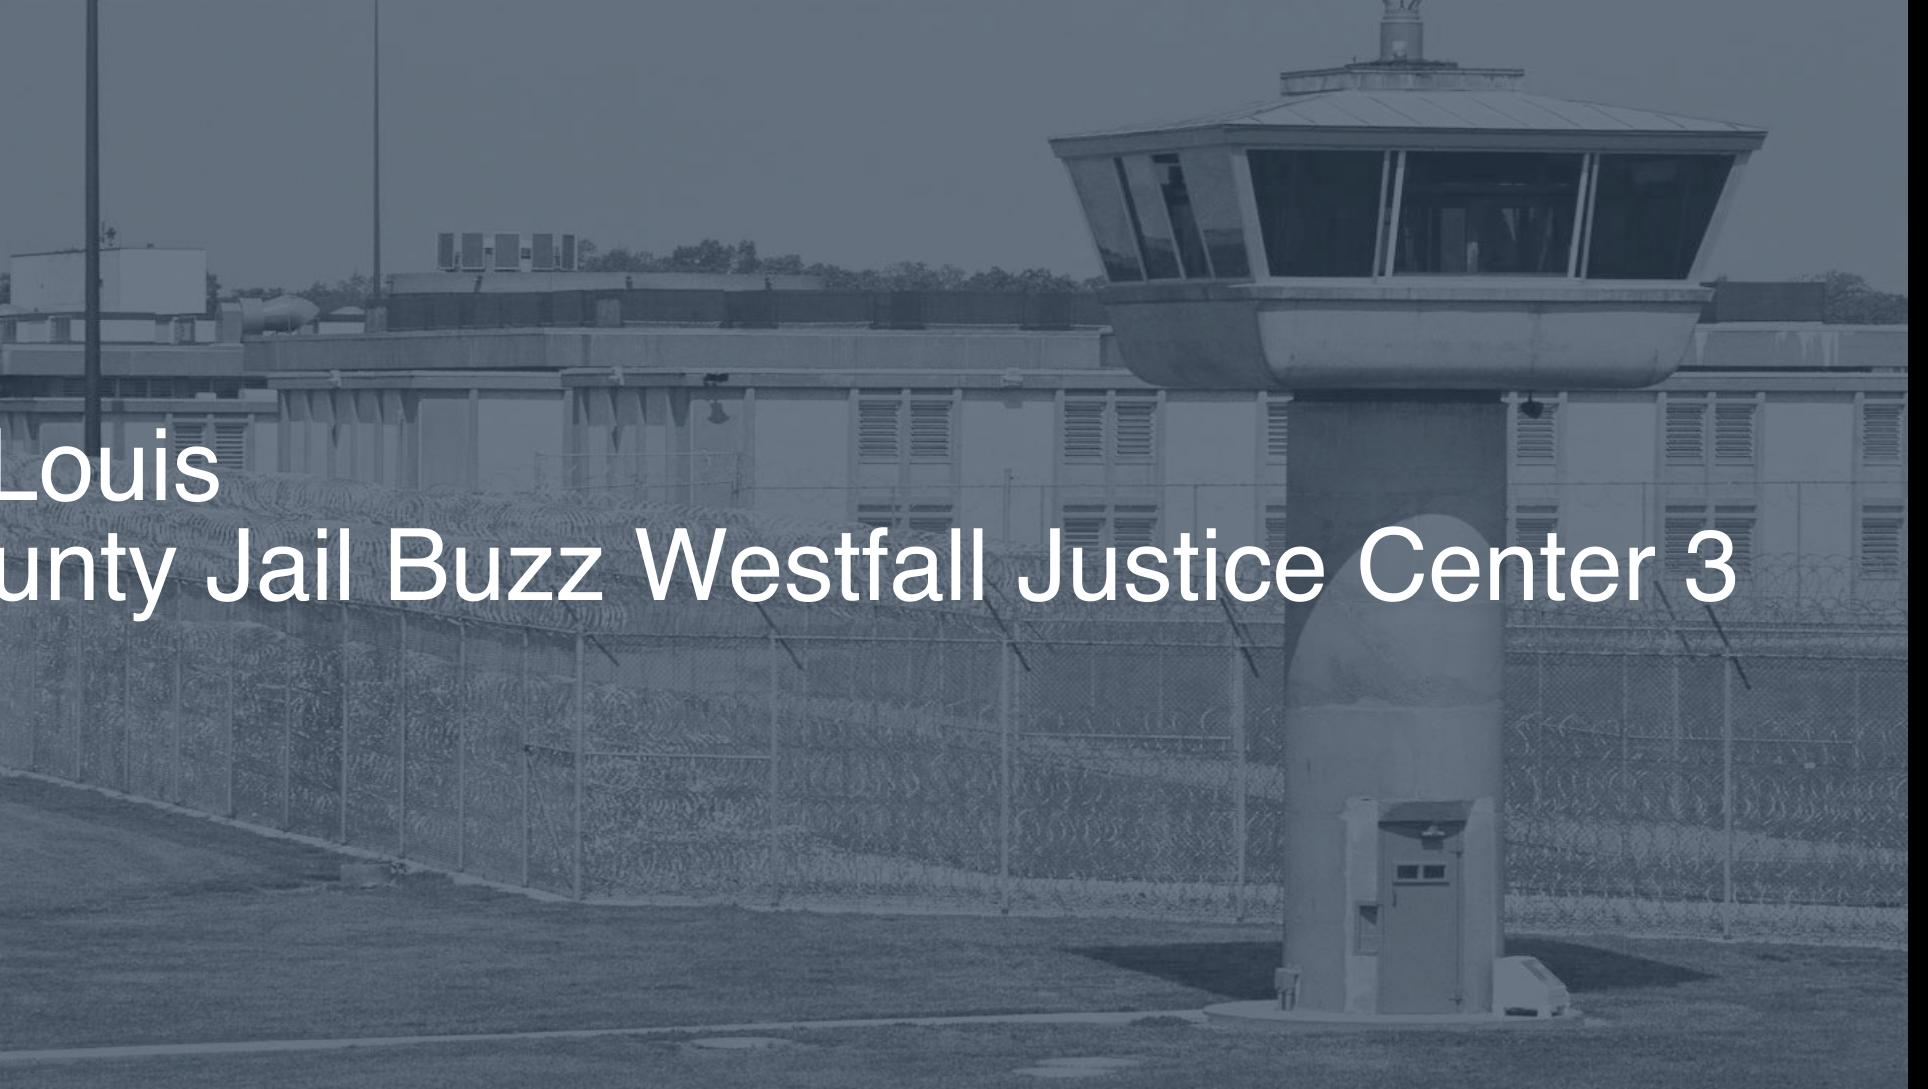 St  Louis County Jail – Buzz Westfall Justice Center